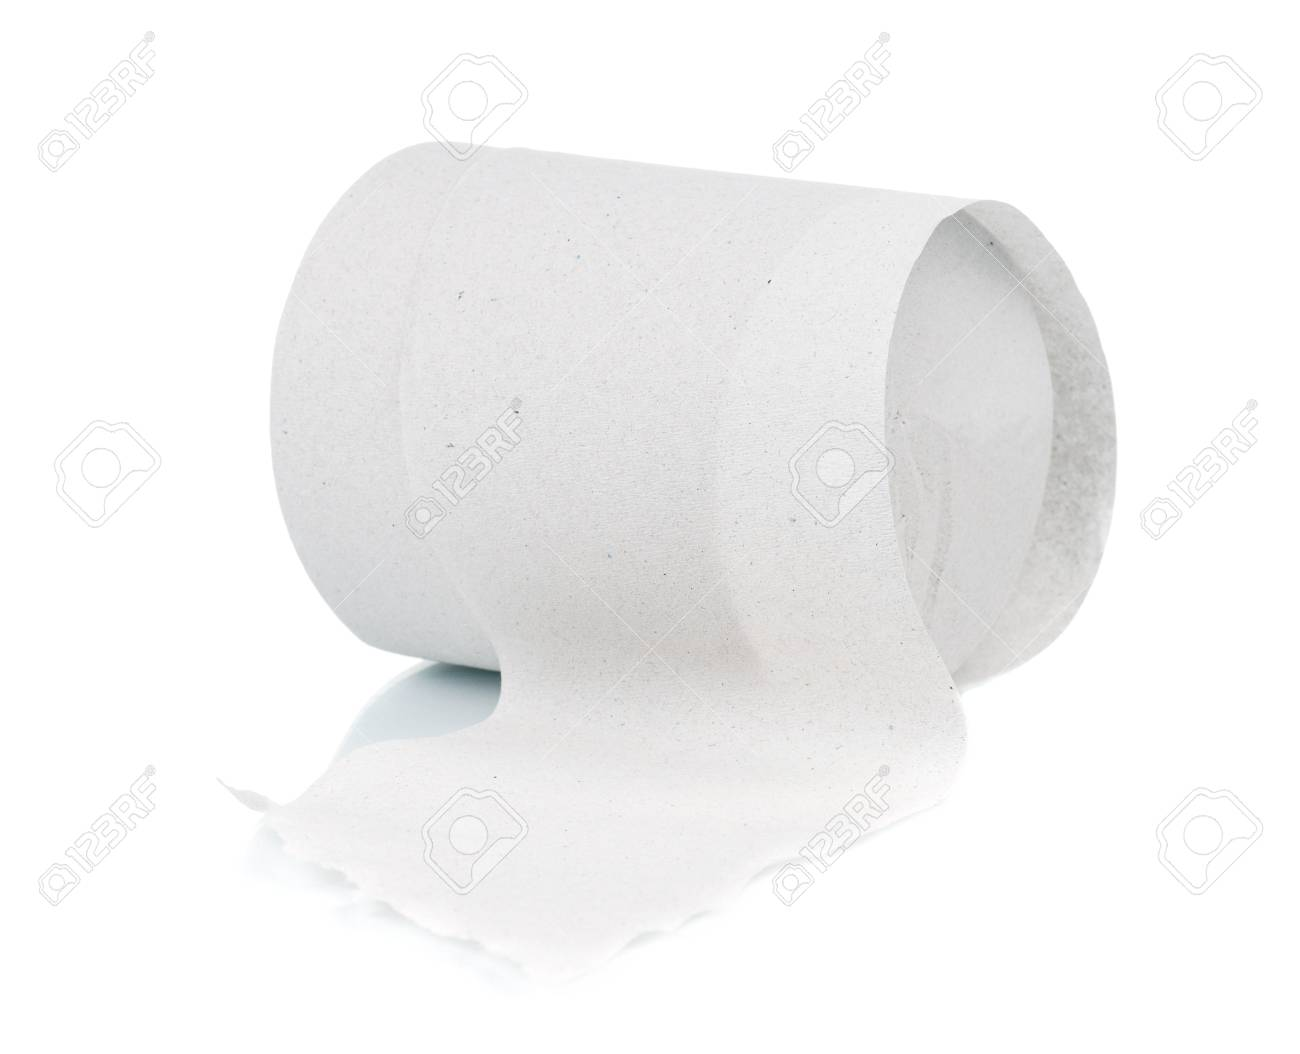 Single roll of toilet paper isolated on white background Stock Photo - 12562106